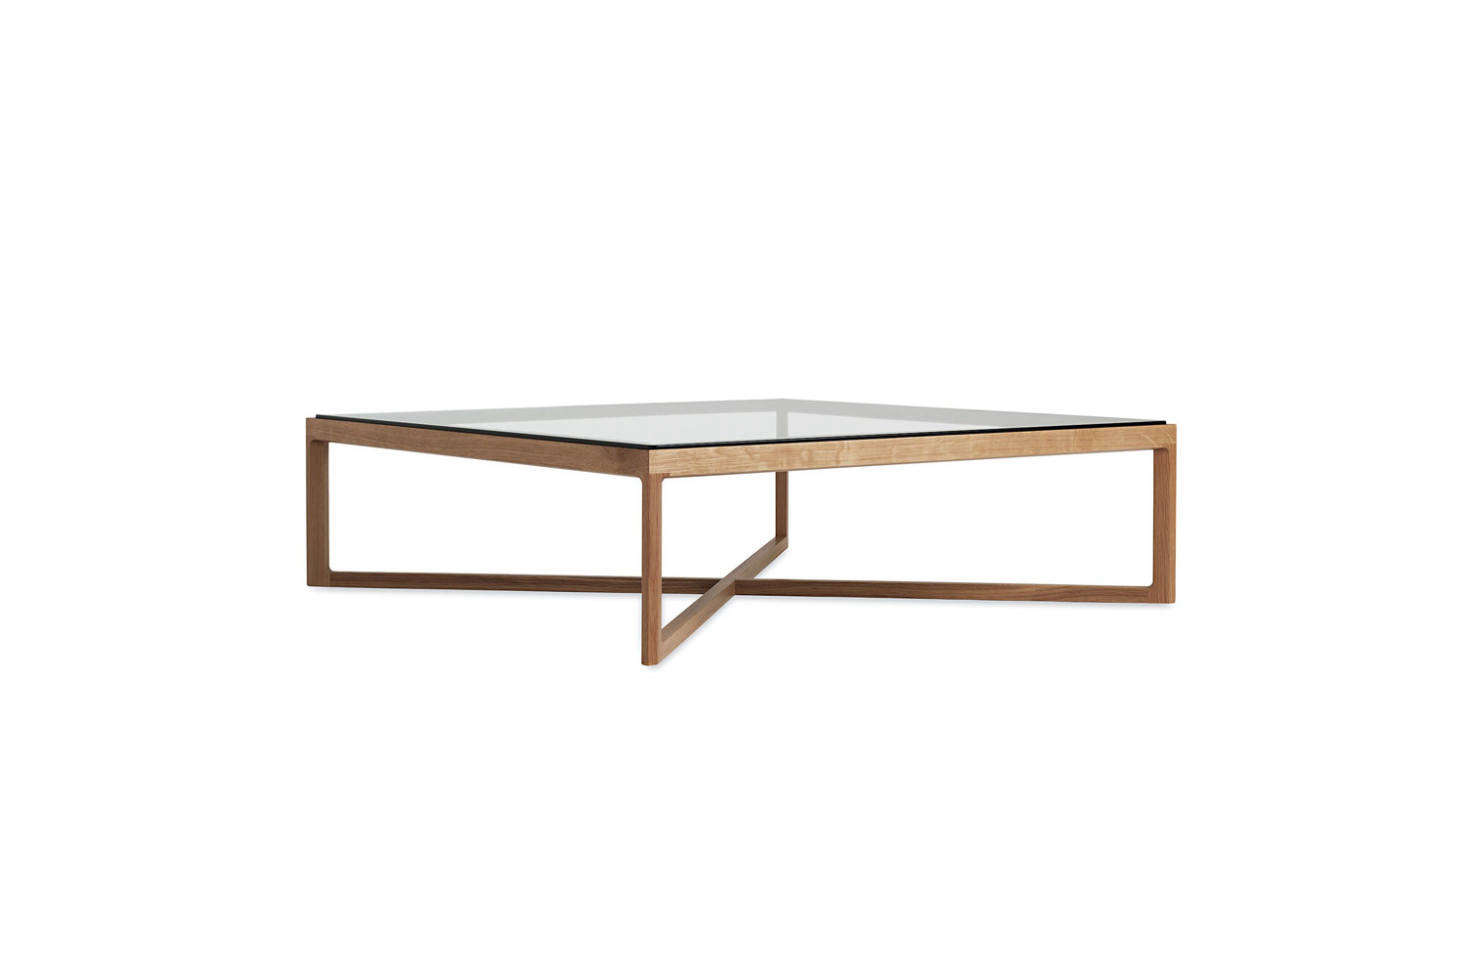 The Knoll Krusin Coffee Table designed by Marc Krusin comes in glass top with four options for a base; $src=